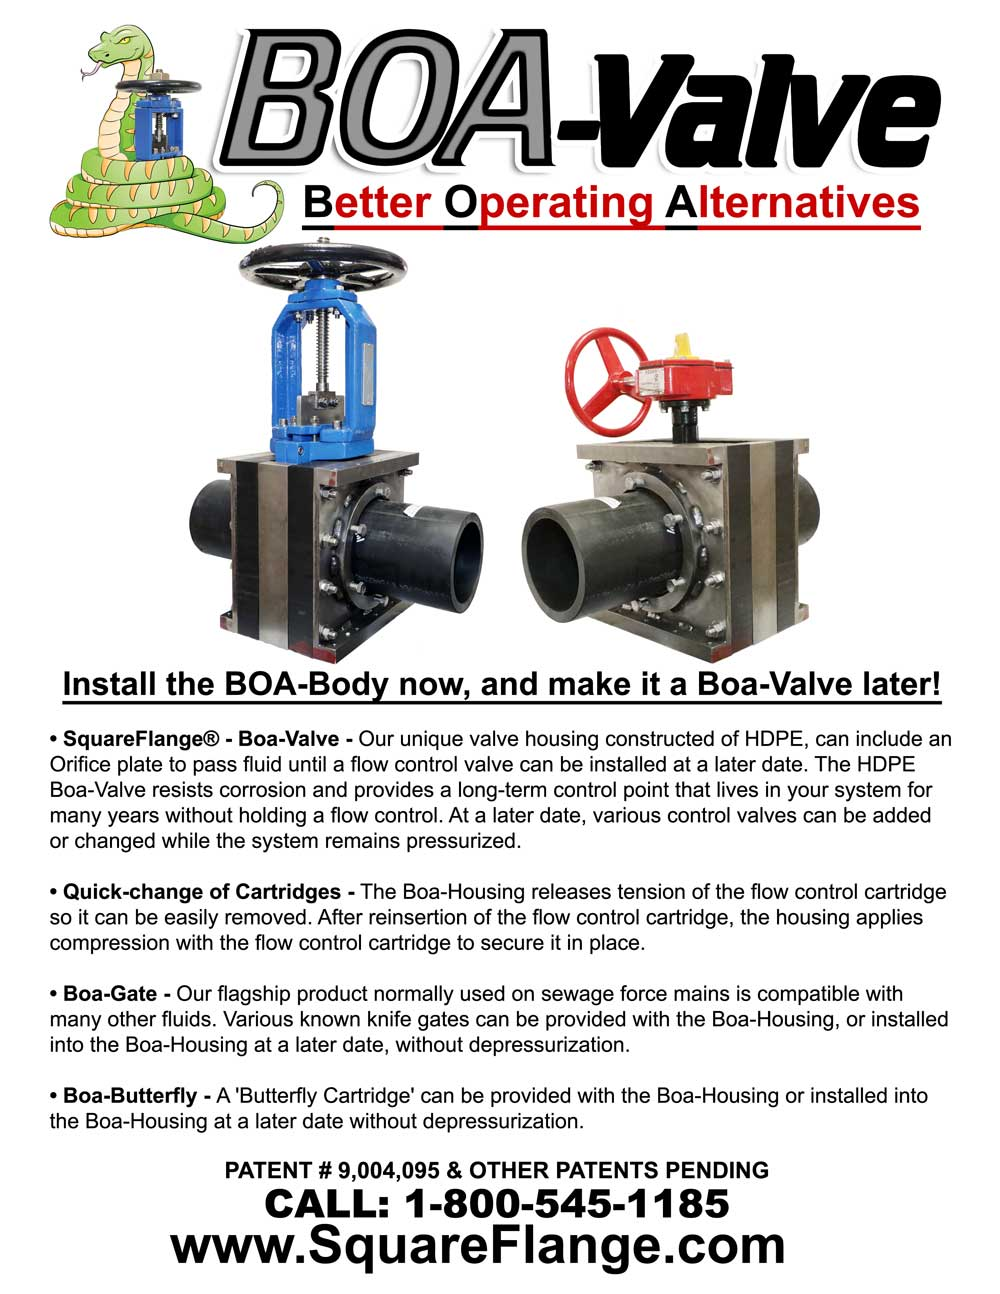 BOA-Valve Better Operating Alternatives